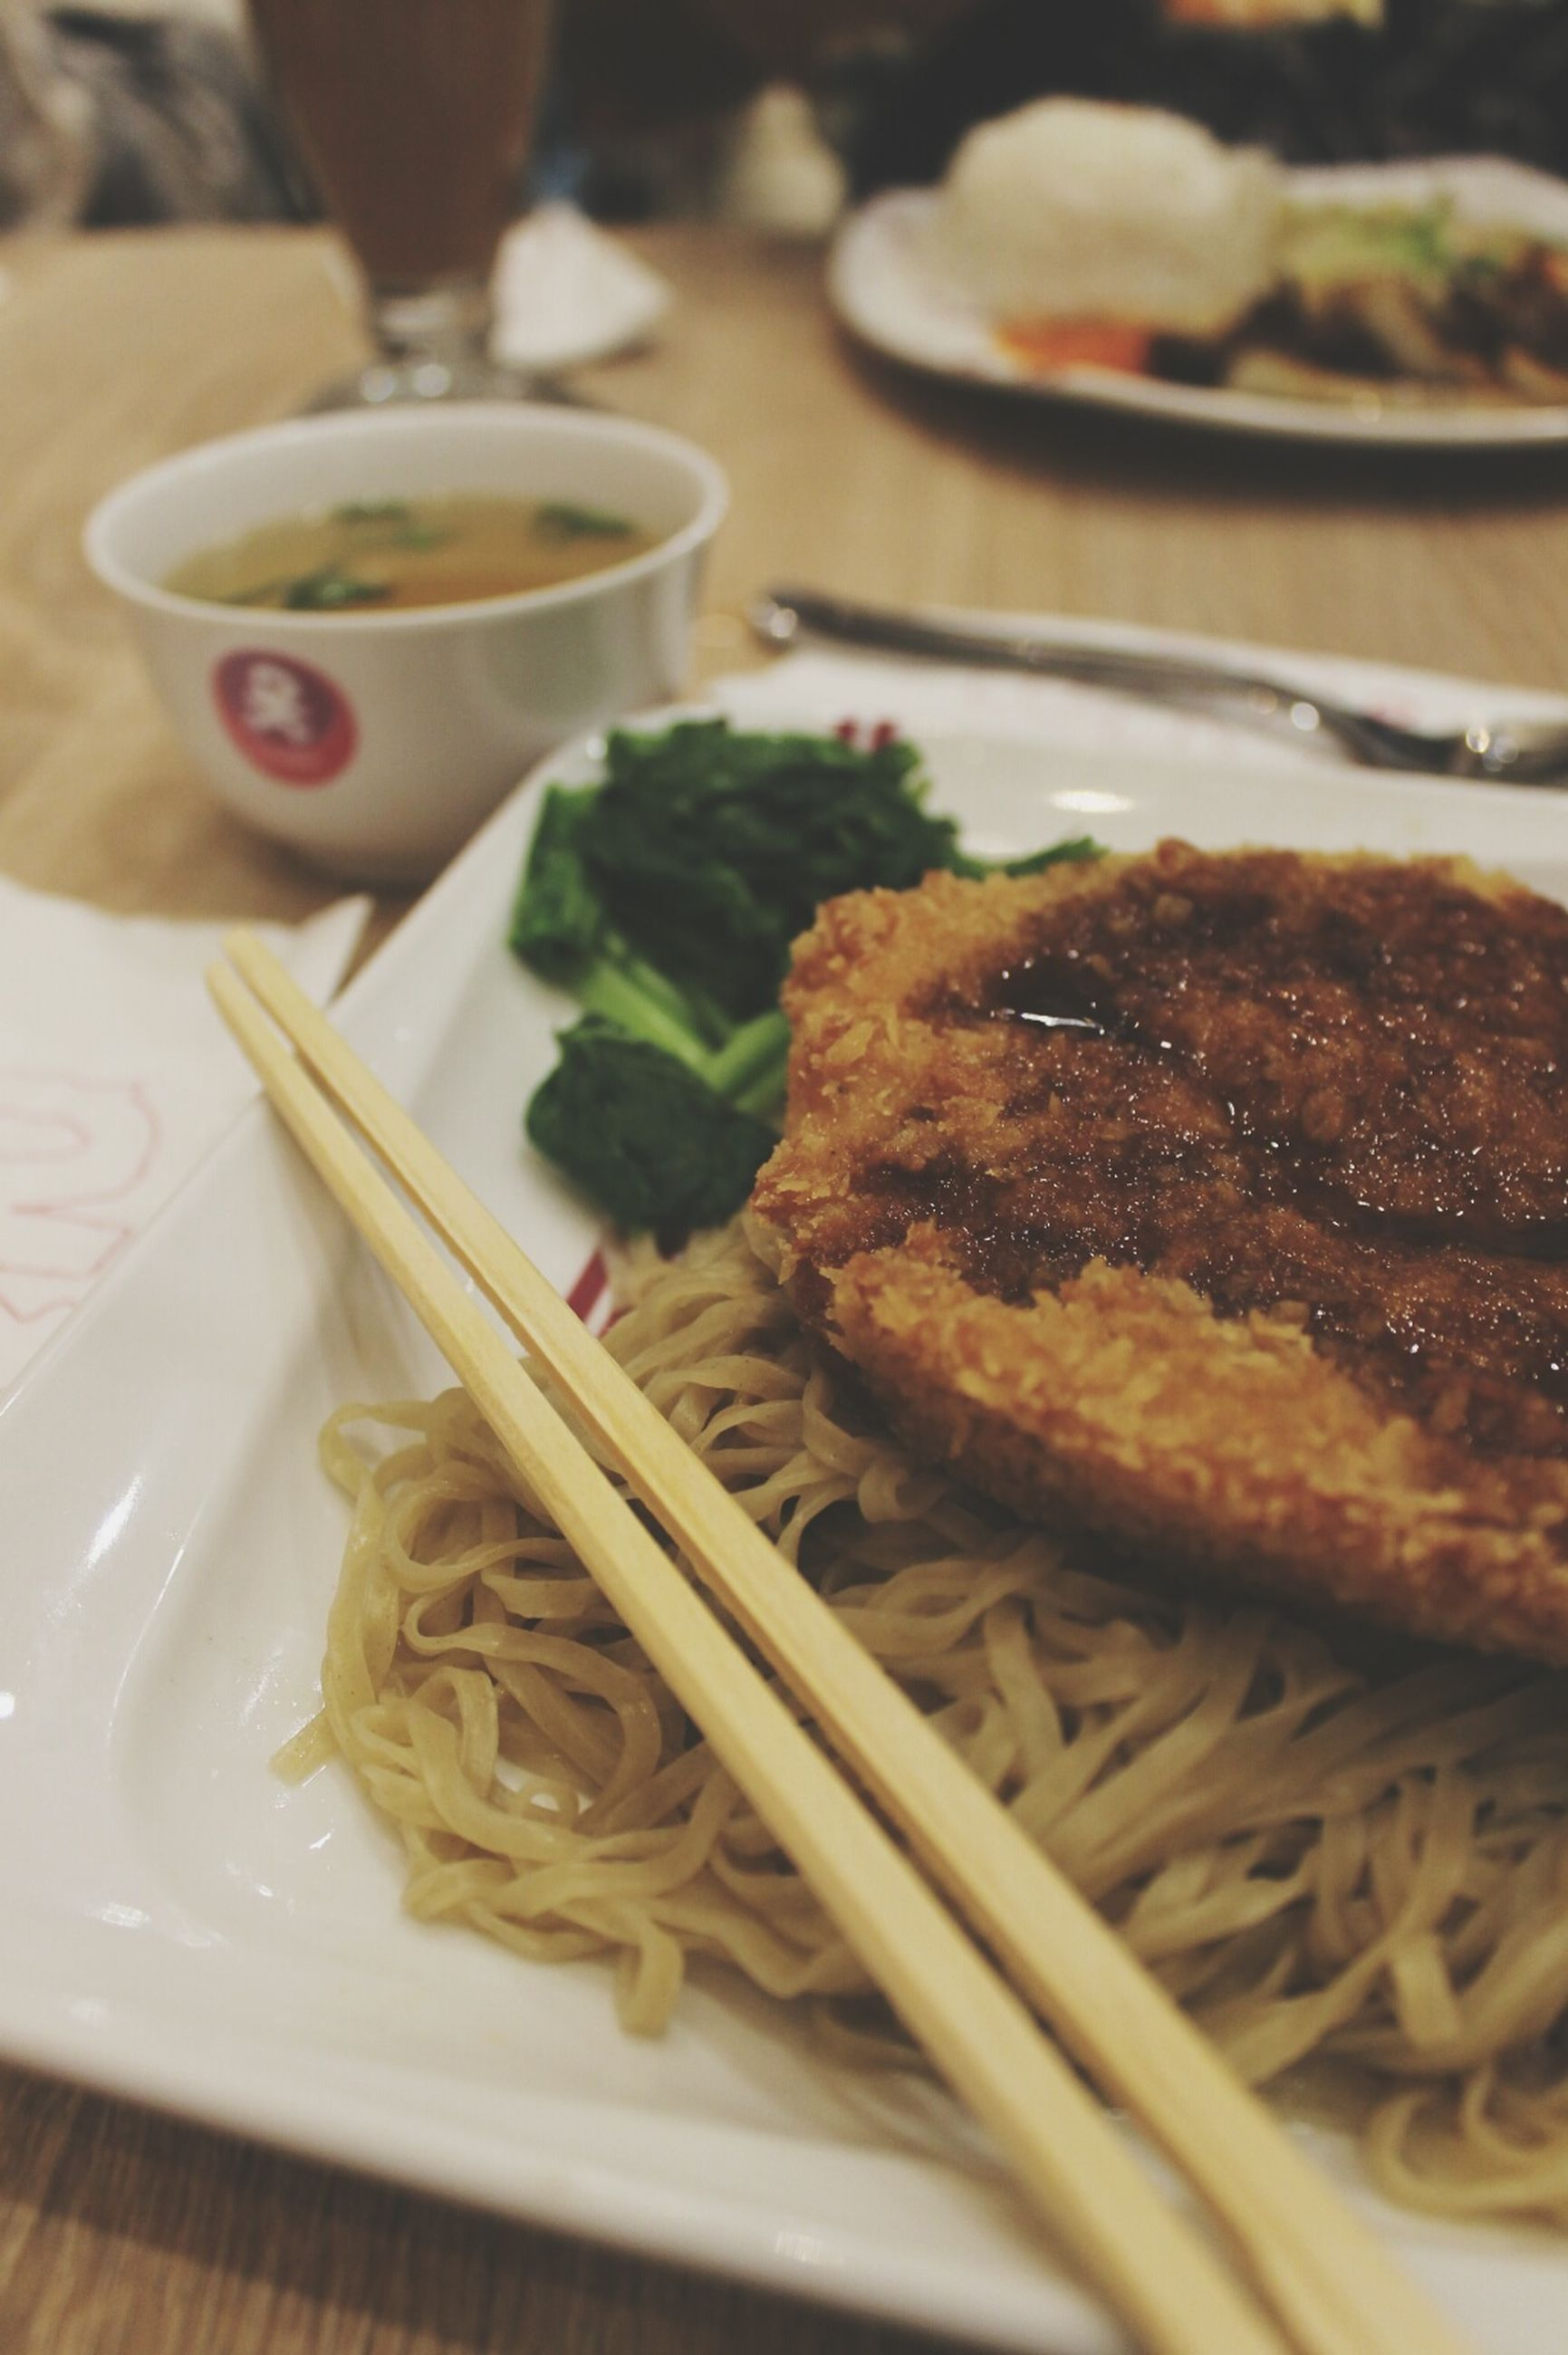 food and drink, food, ready-to-eat, plate, chopsticks, serving size, indoors, freshness, noodles, close-up, table, meal, bowl, healthy eating, vegetable, meat, no people, indulgence, day